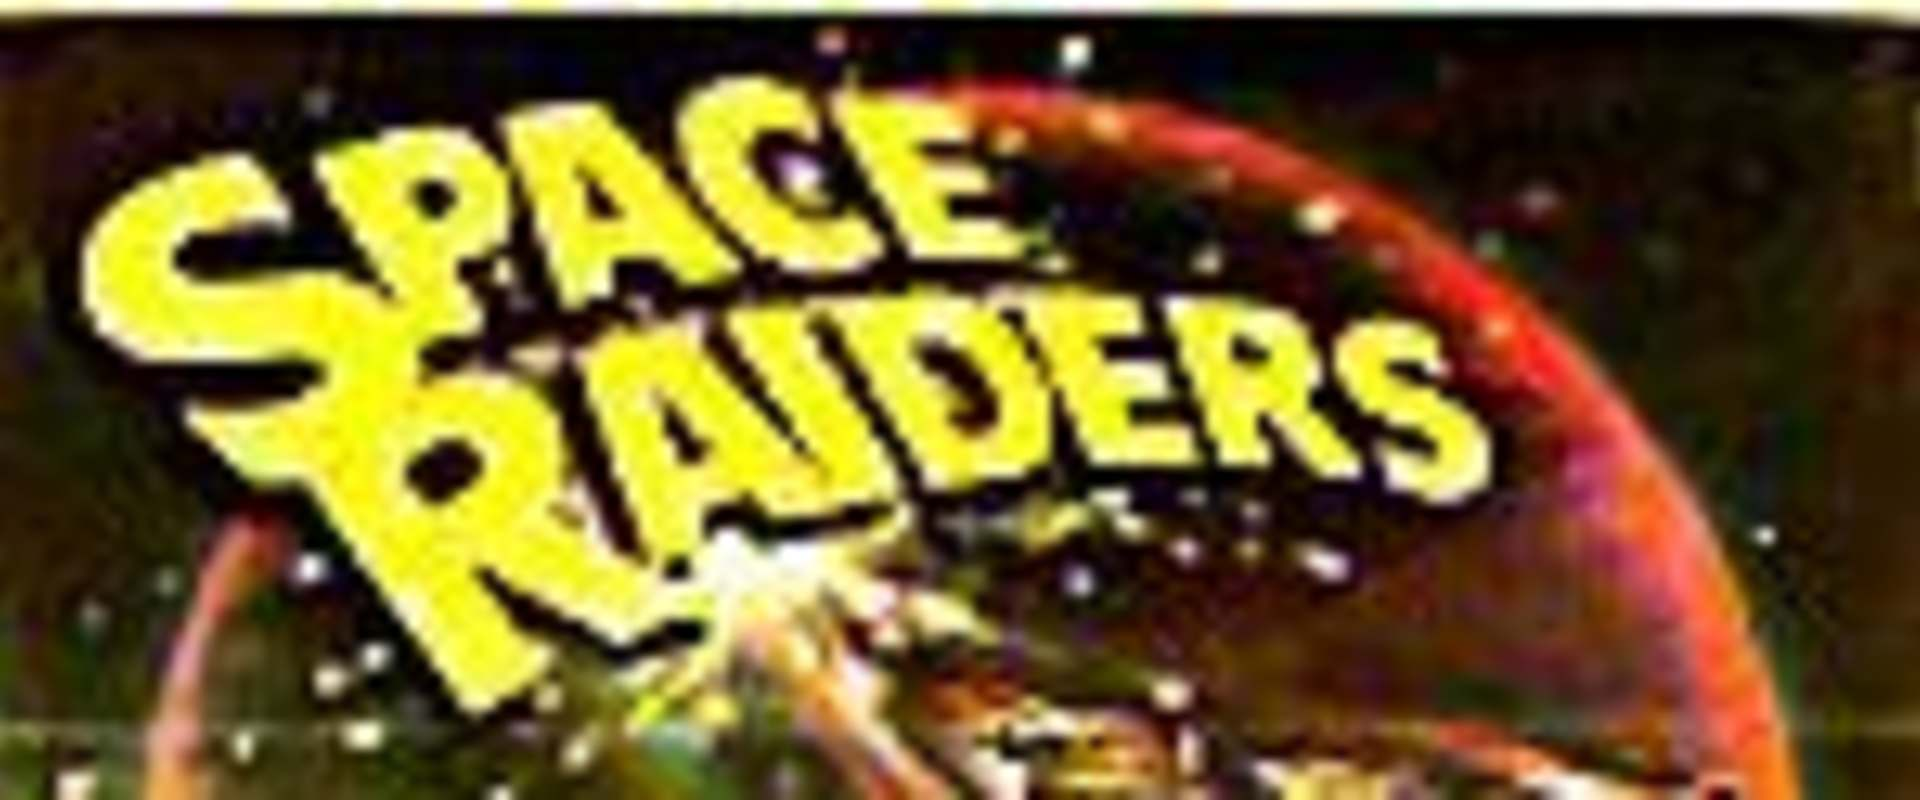 Space Raiders background 1